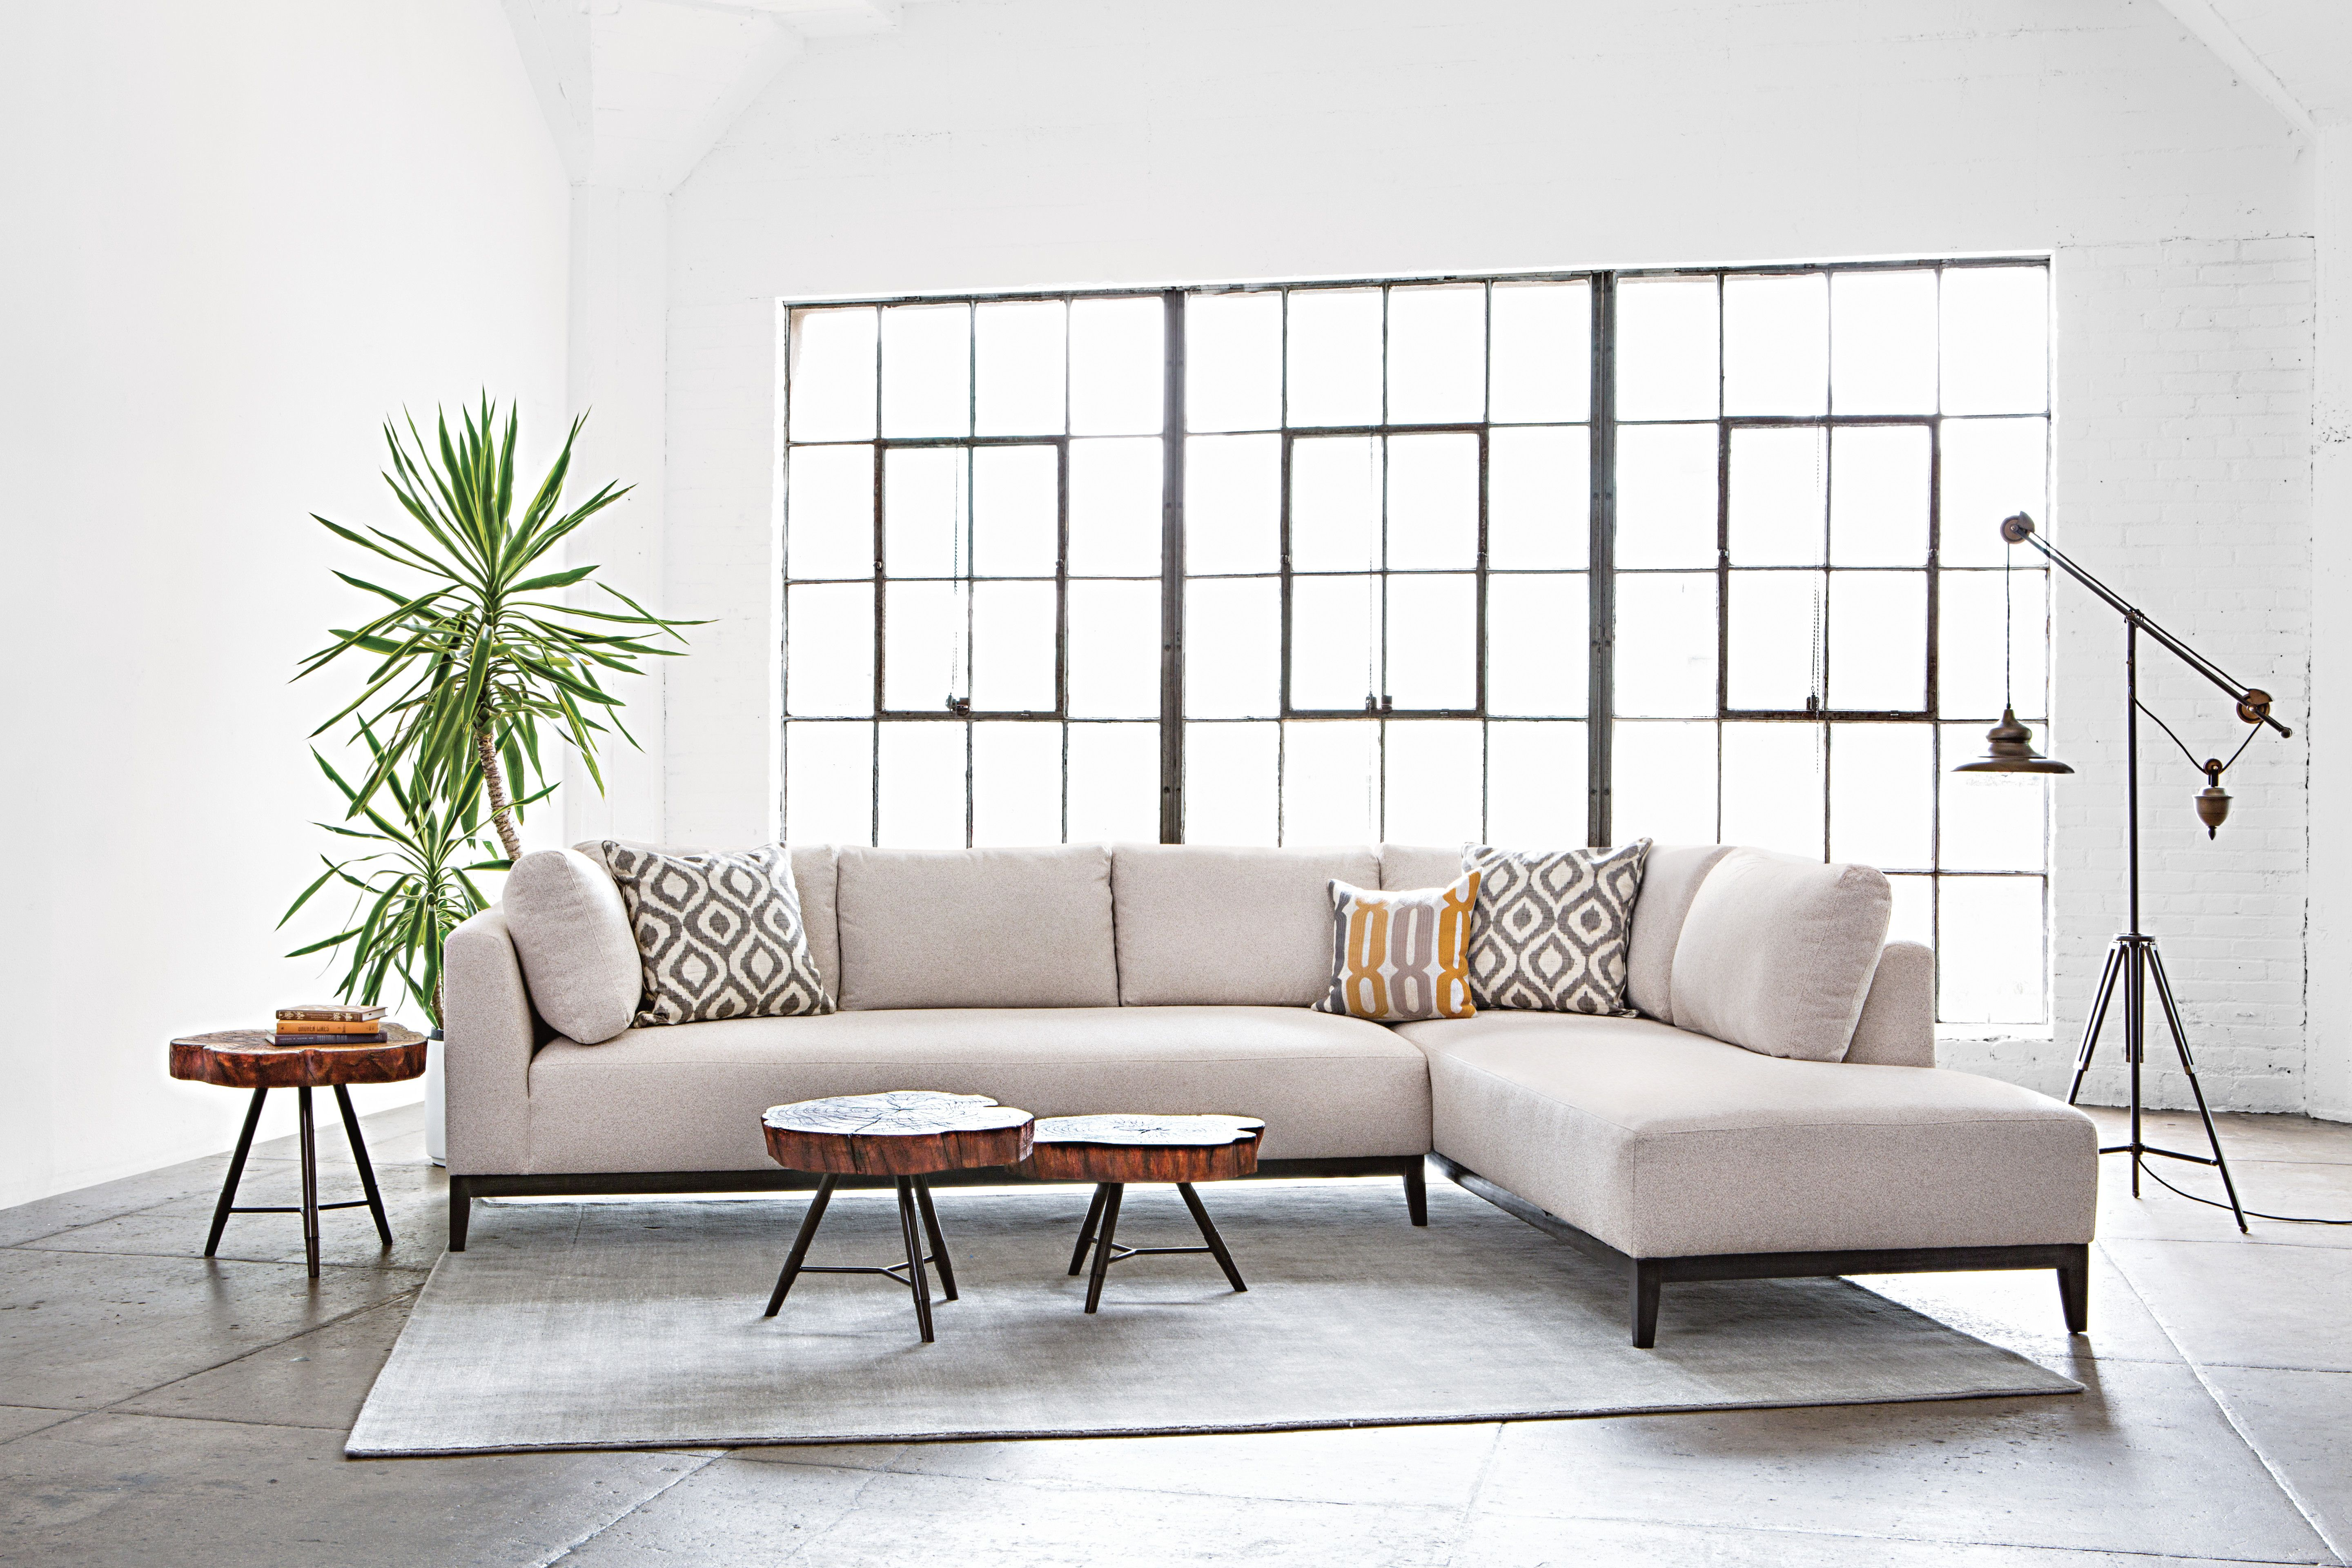 207 best Sofas and Sectionals images on Pinterest